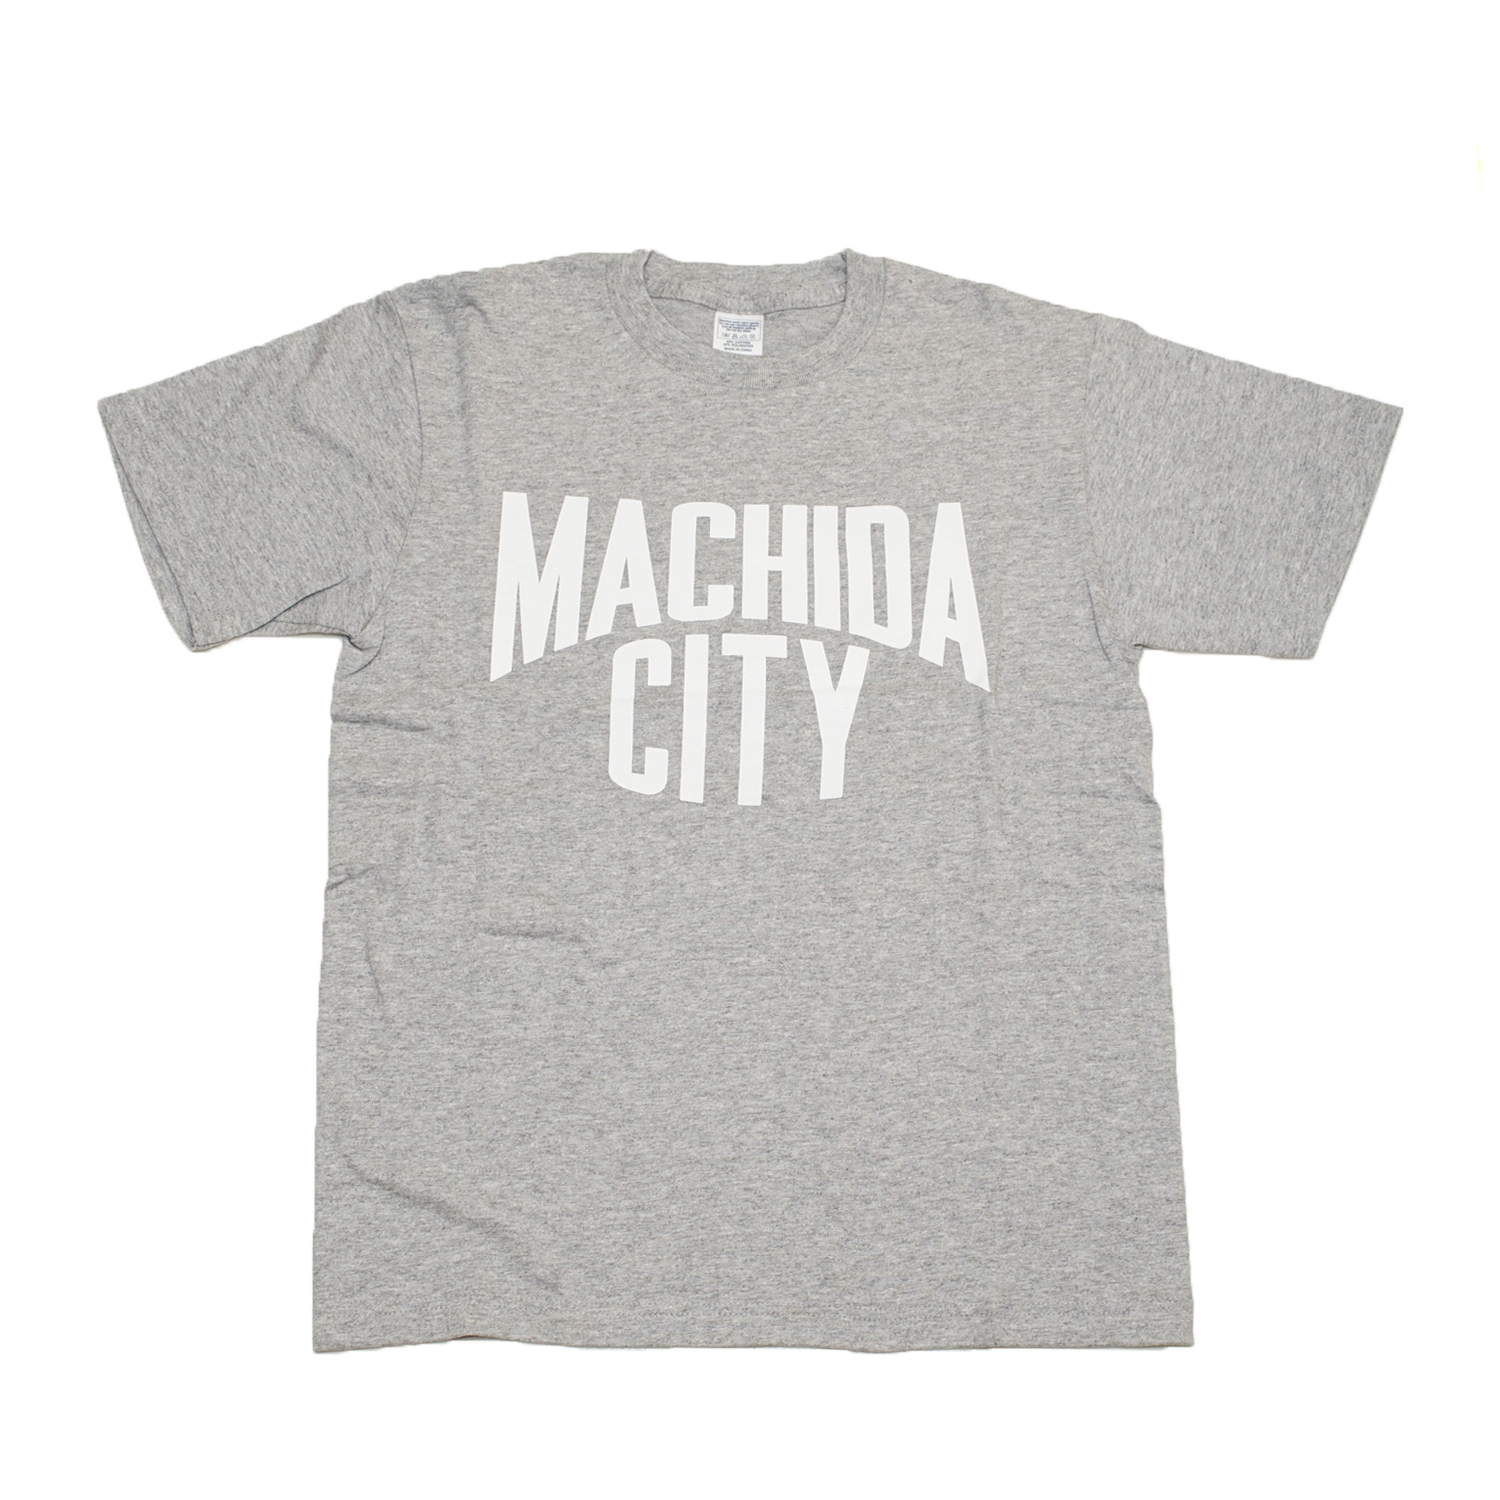 MACHIDA CITY TEE (HEATHER GREY)